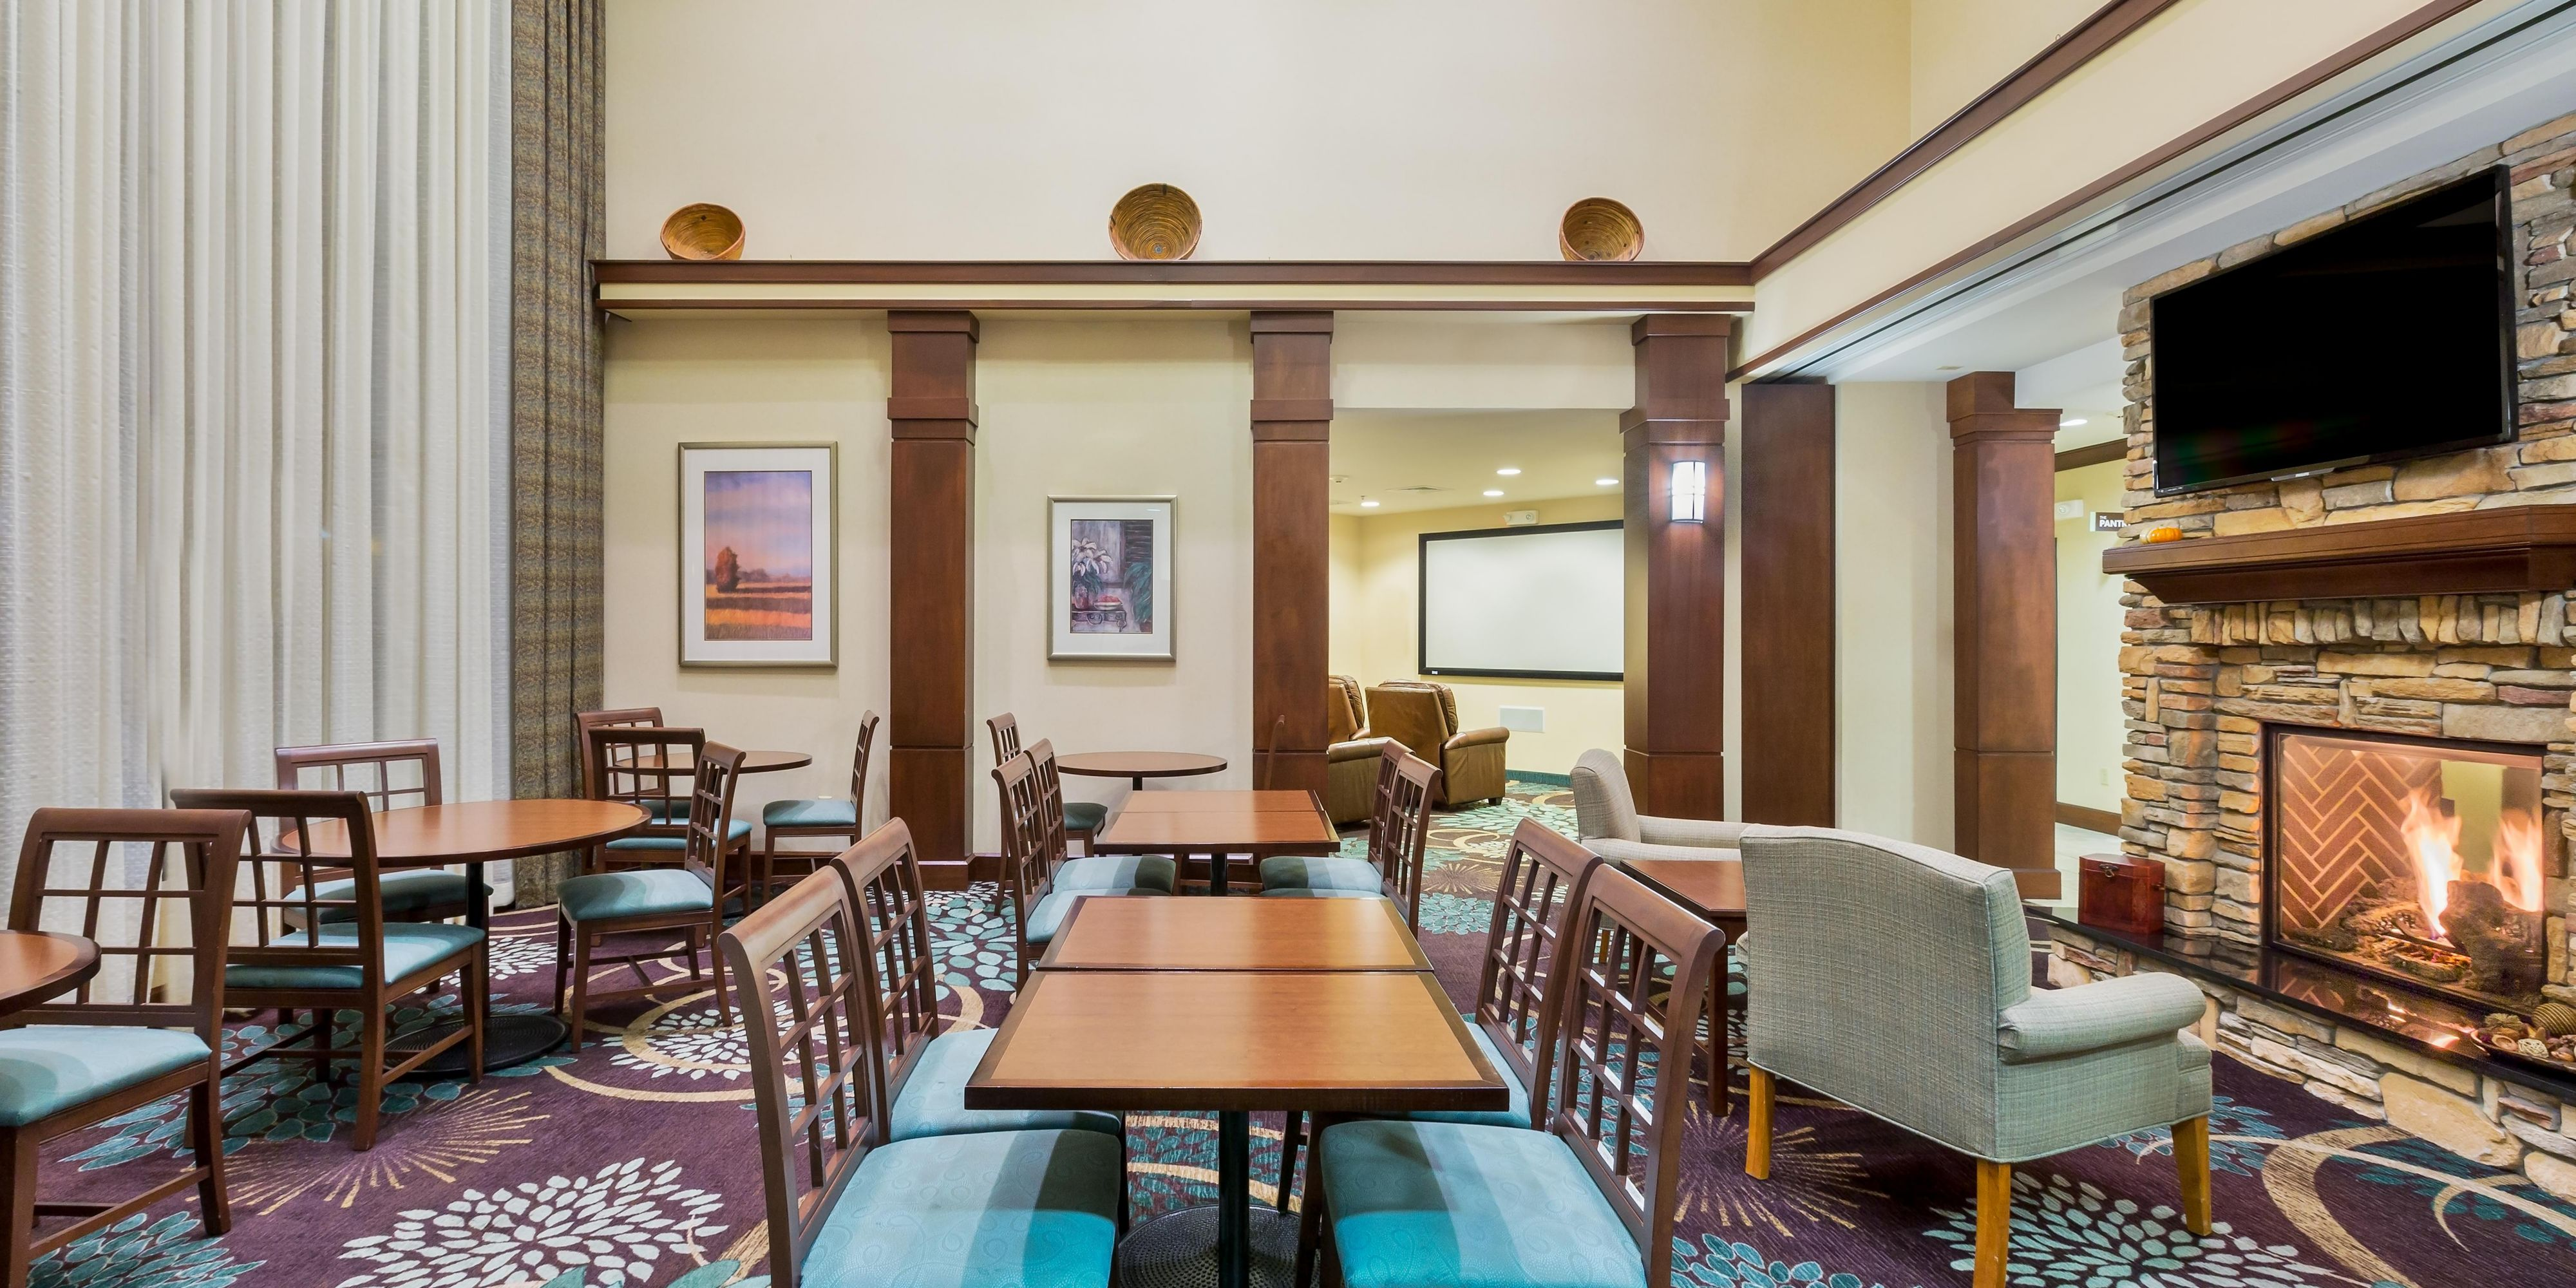 Awesome Missoula Hotels: Staybridge Suites Missoula   Extended Stay Hotel In  Missoula, Montana